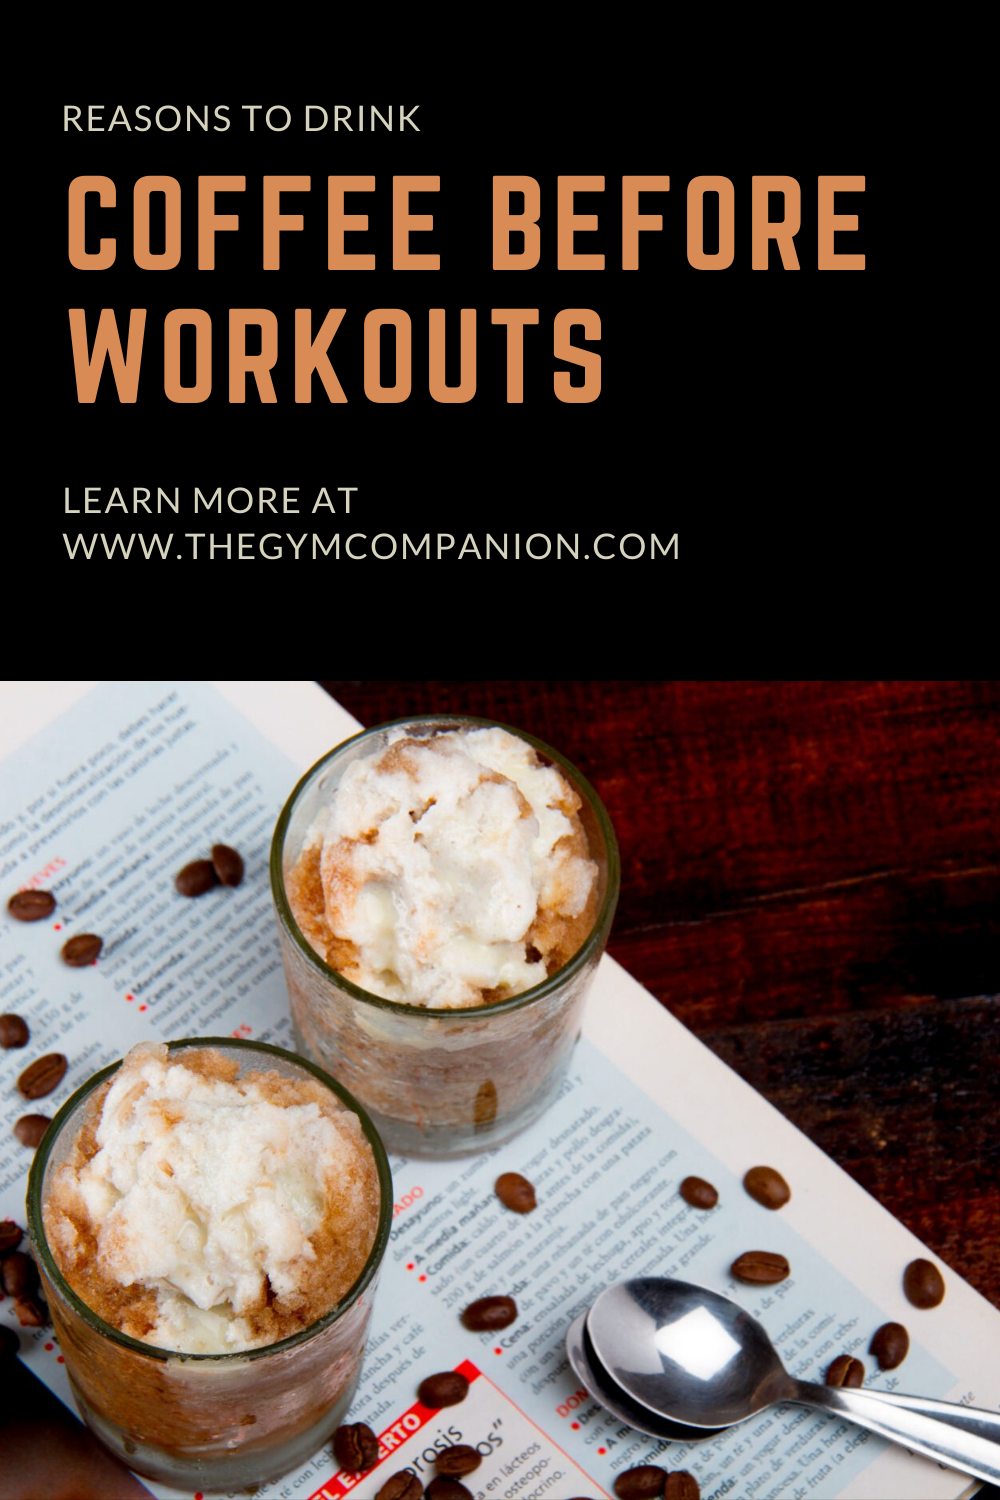 Should You Drink Coffee Before Workout? | TheGymCompanion | Recipe | Coffee before workout ...